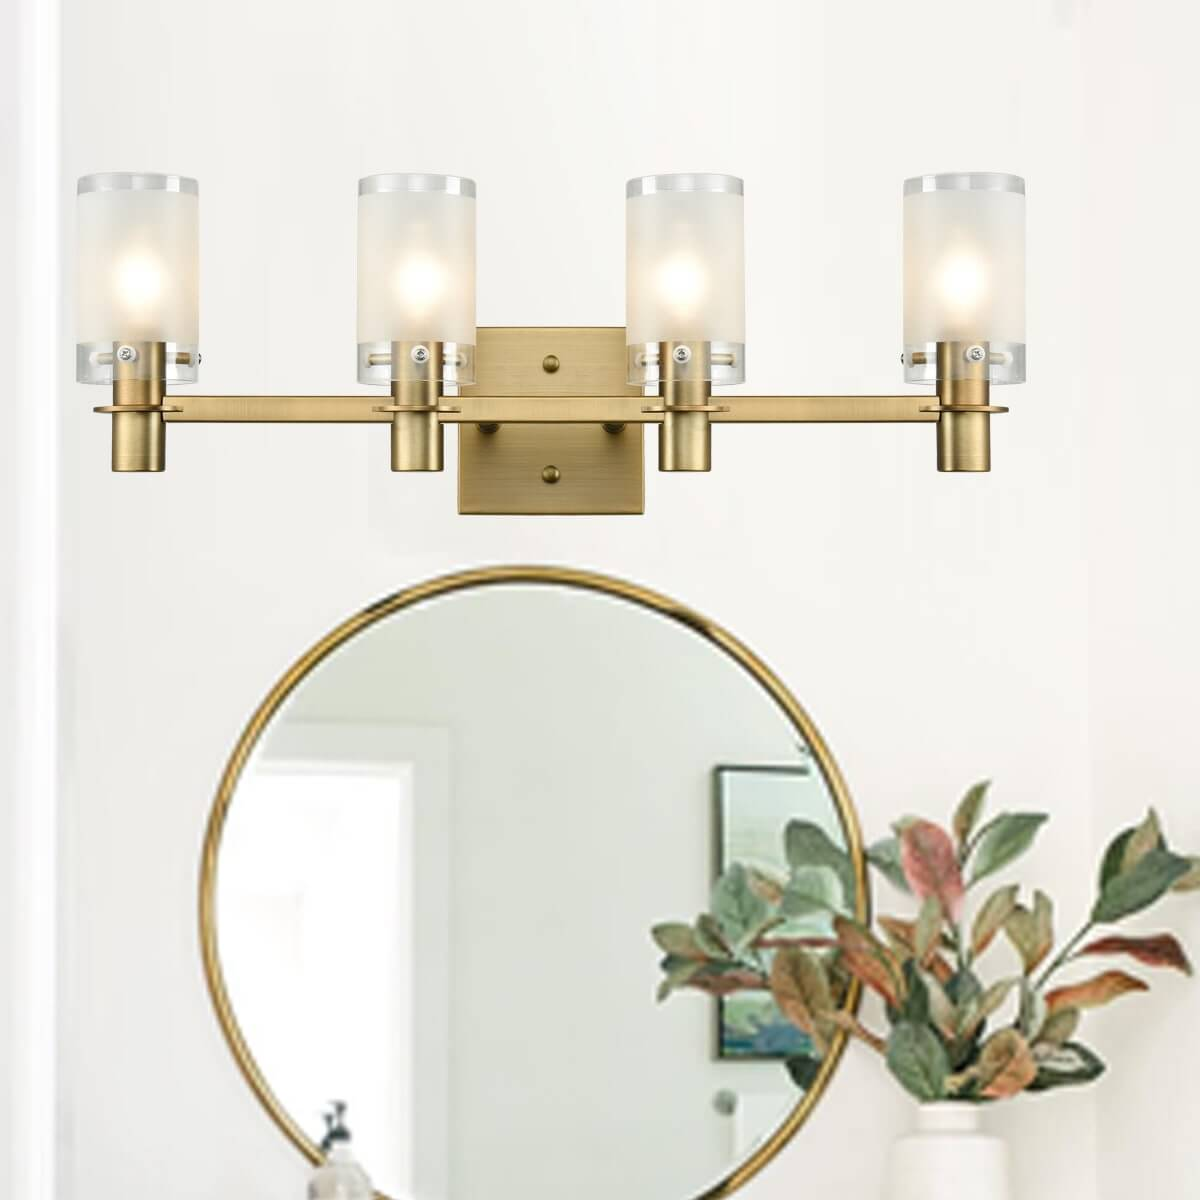 Modern Brass Bathroom Vanity Lighting with Frosted Glass – 4 Light